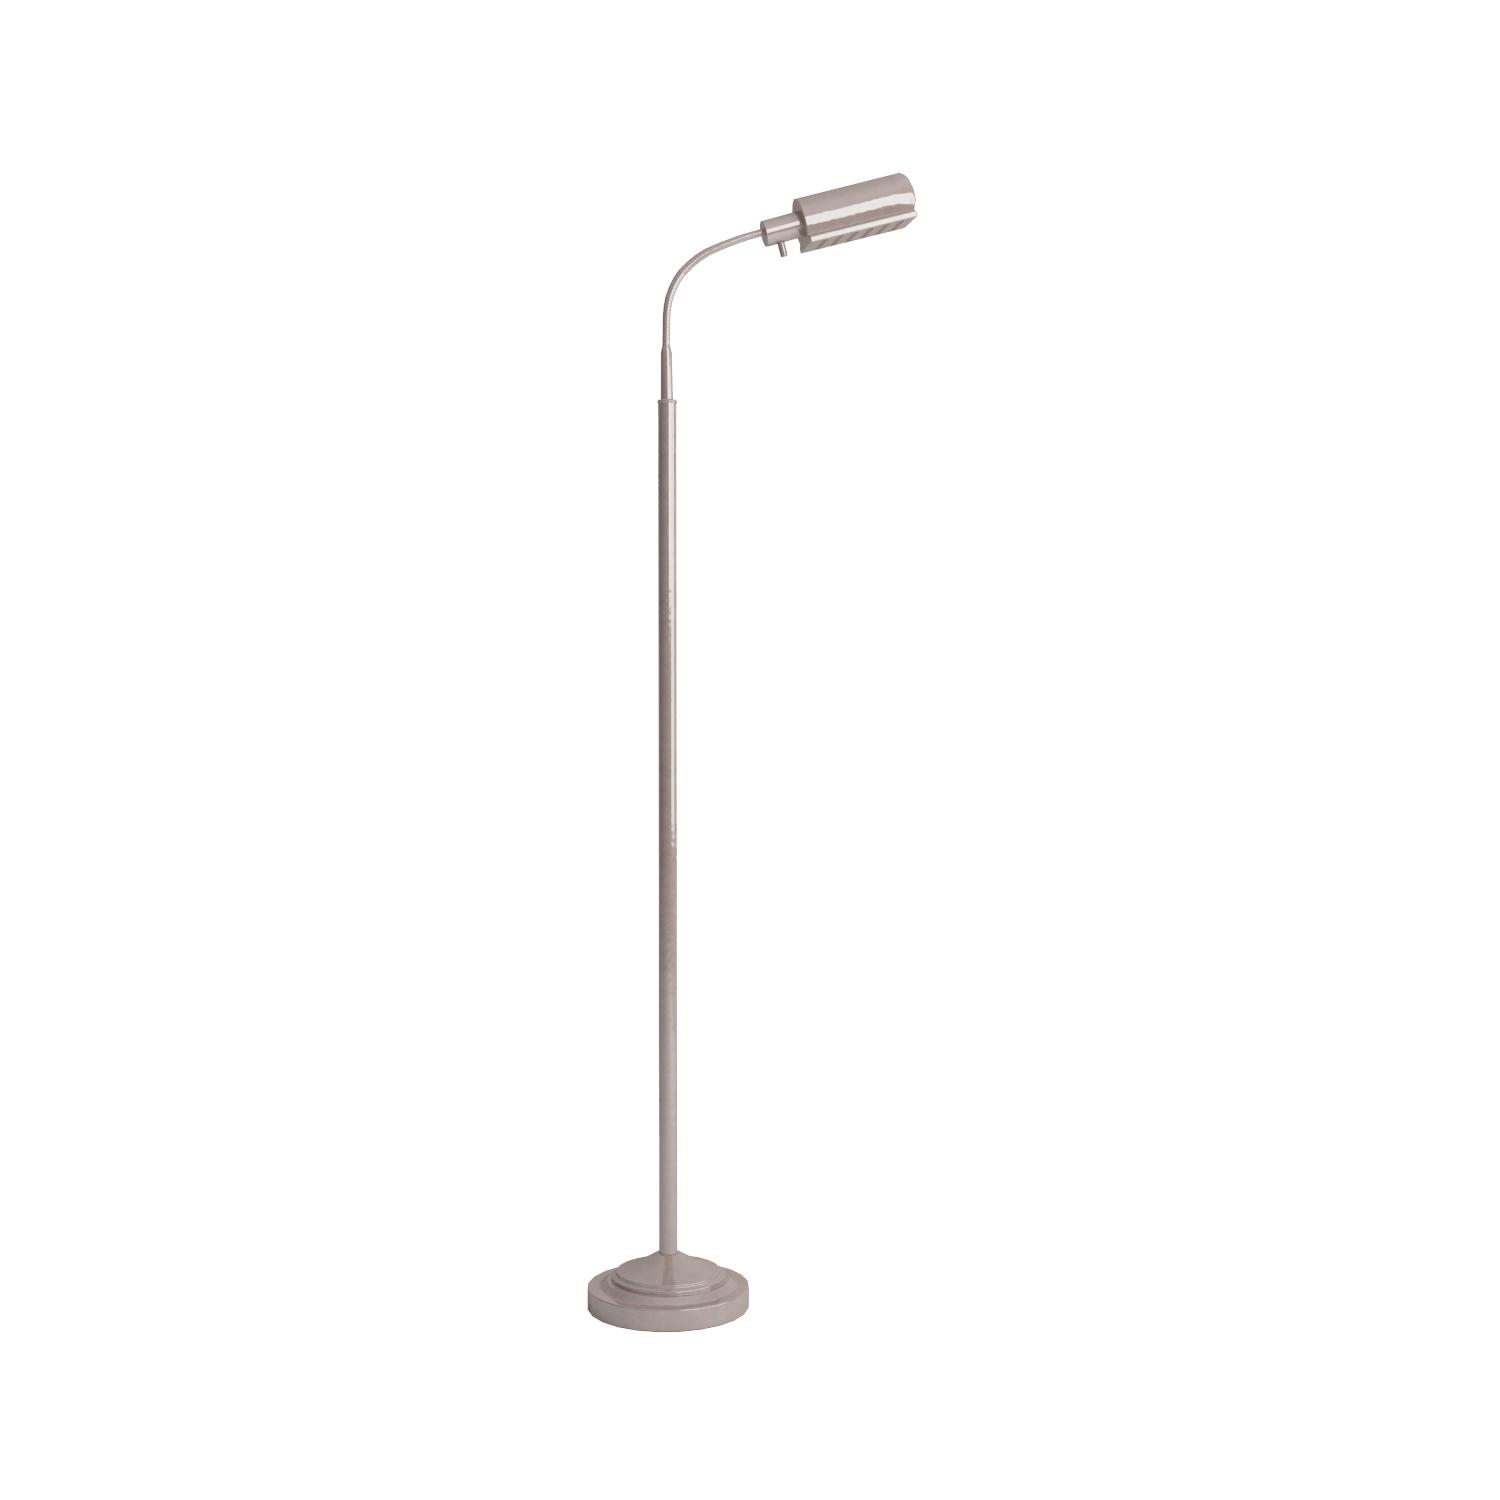 Simpla daylight 24 402051 15 cordless floor lamp brushed nickel daylight24